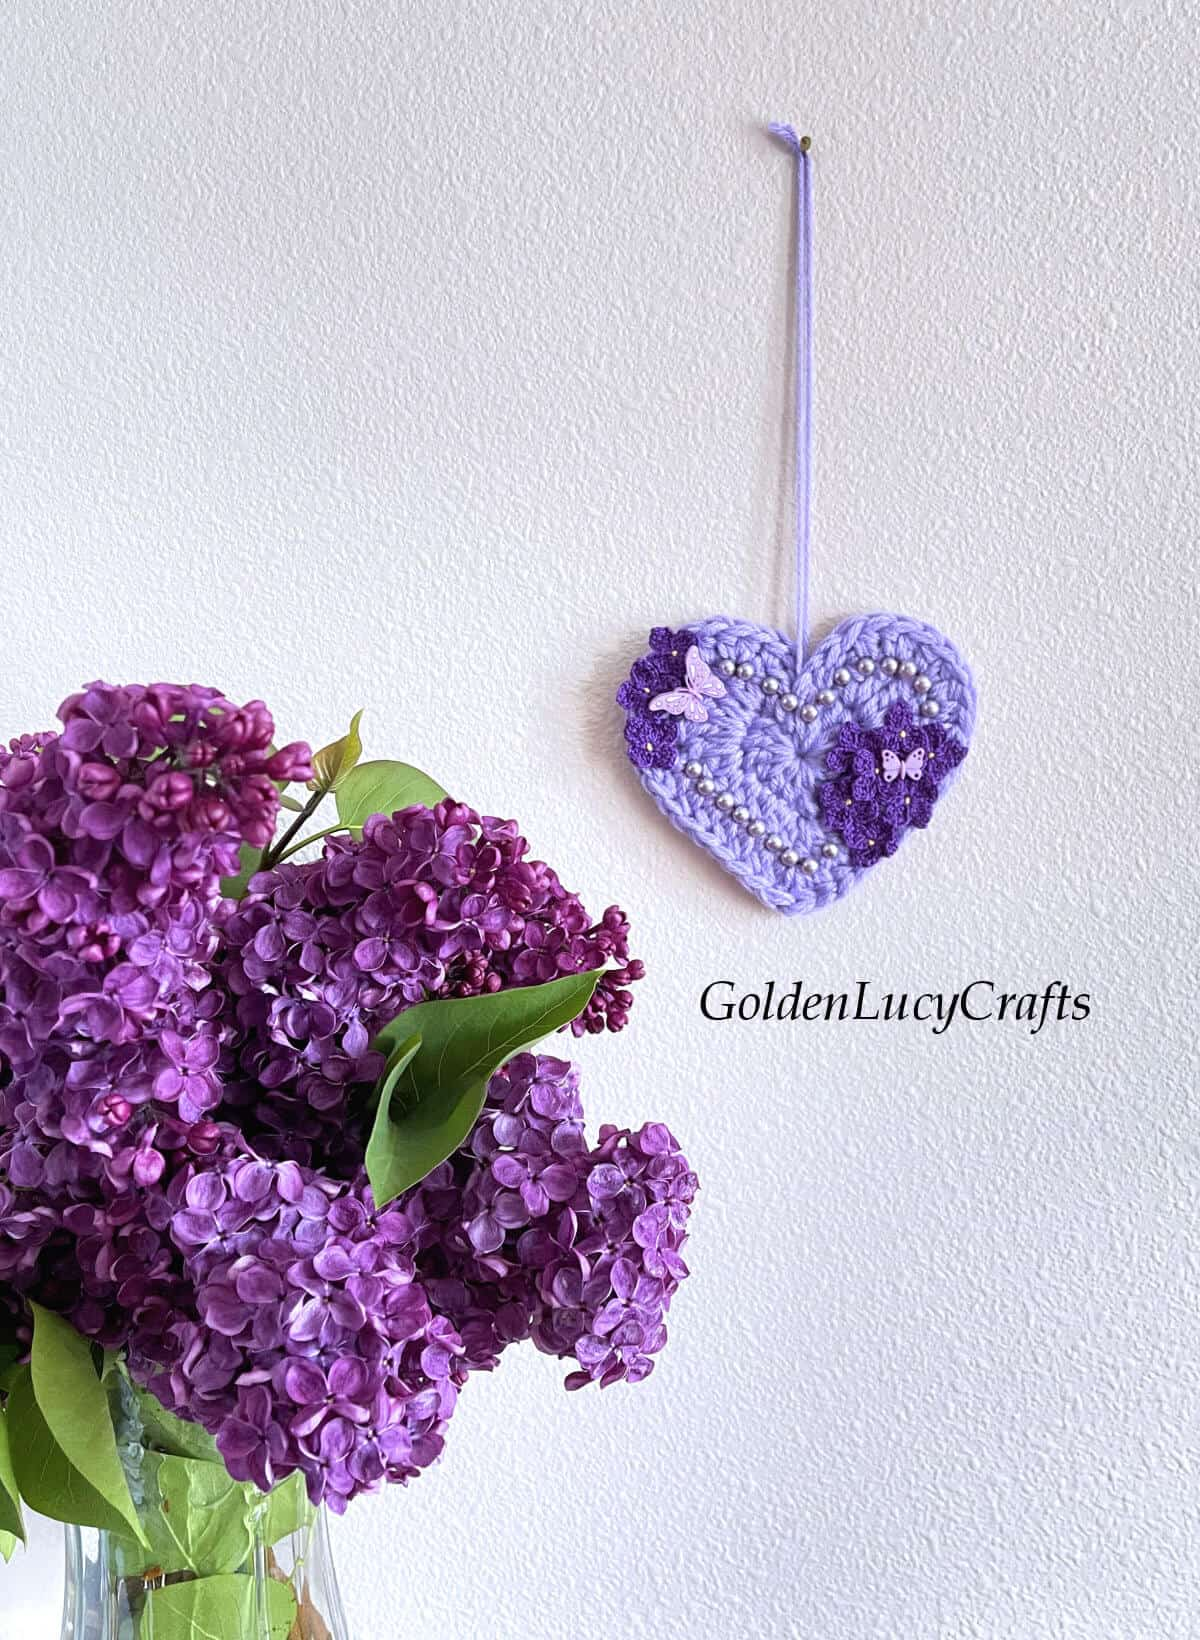 Crocheted heart embellished with crochet lilac flowers and beads hanging on the wall, lilac bouquet in a base next to it.